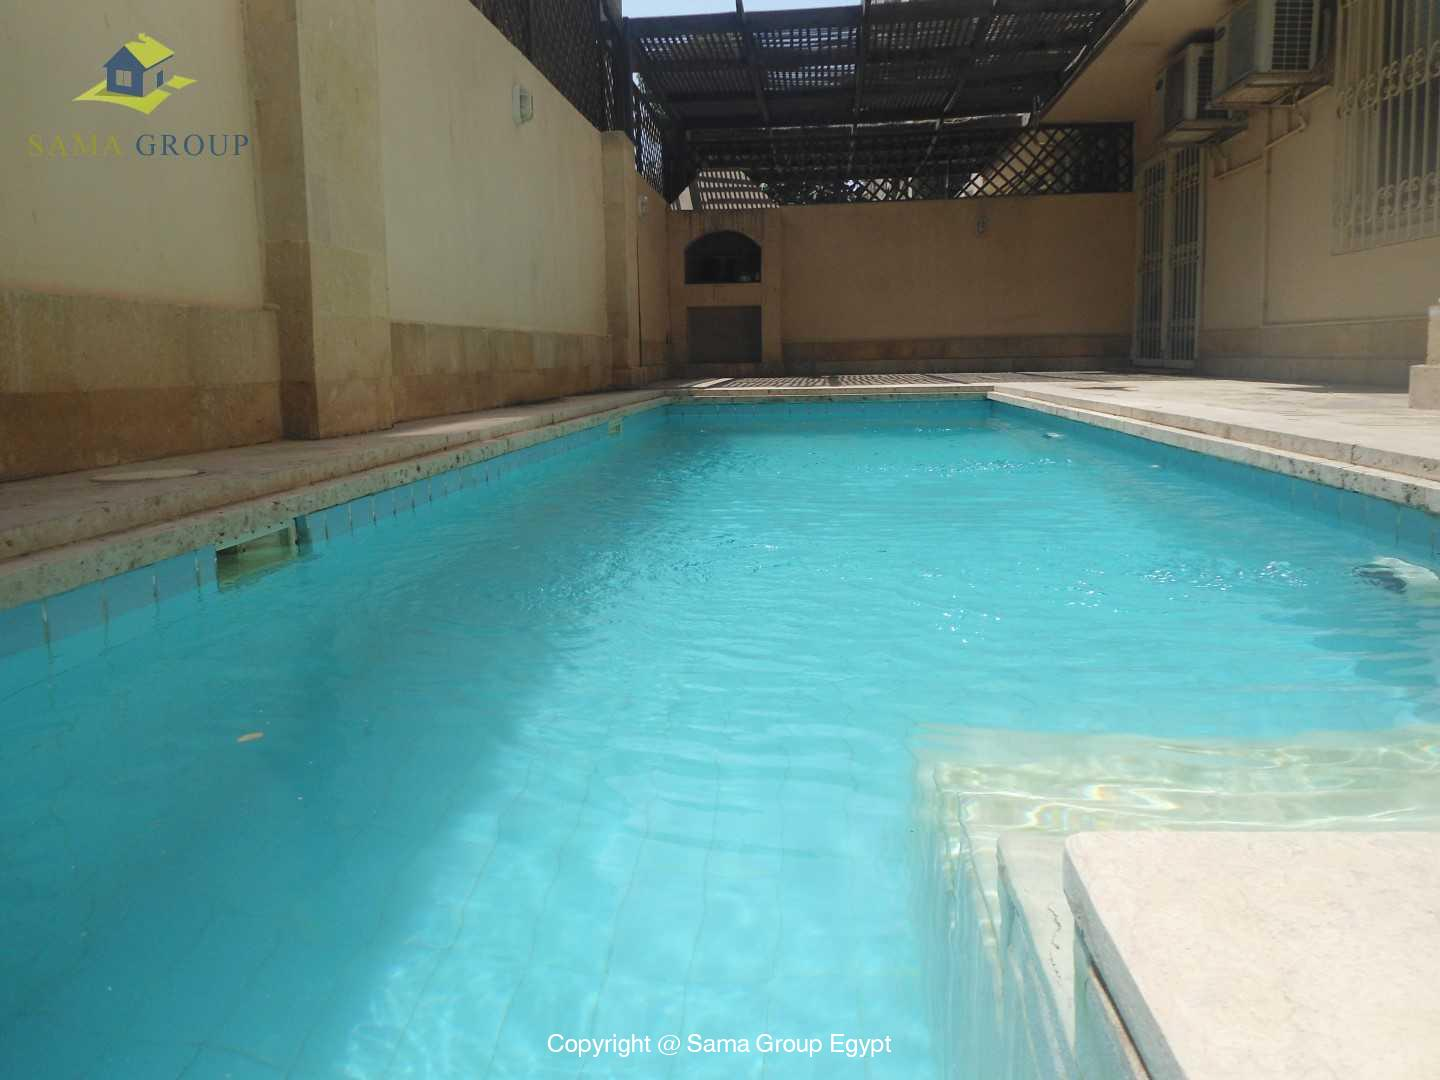 Ground Floor With Pool For Rent In Maadi Sarayat,Modern Furnished,Ground Floor NO #1